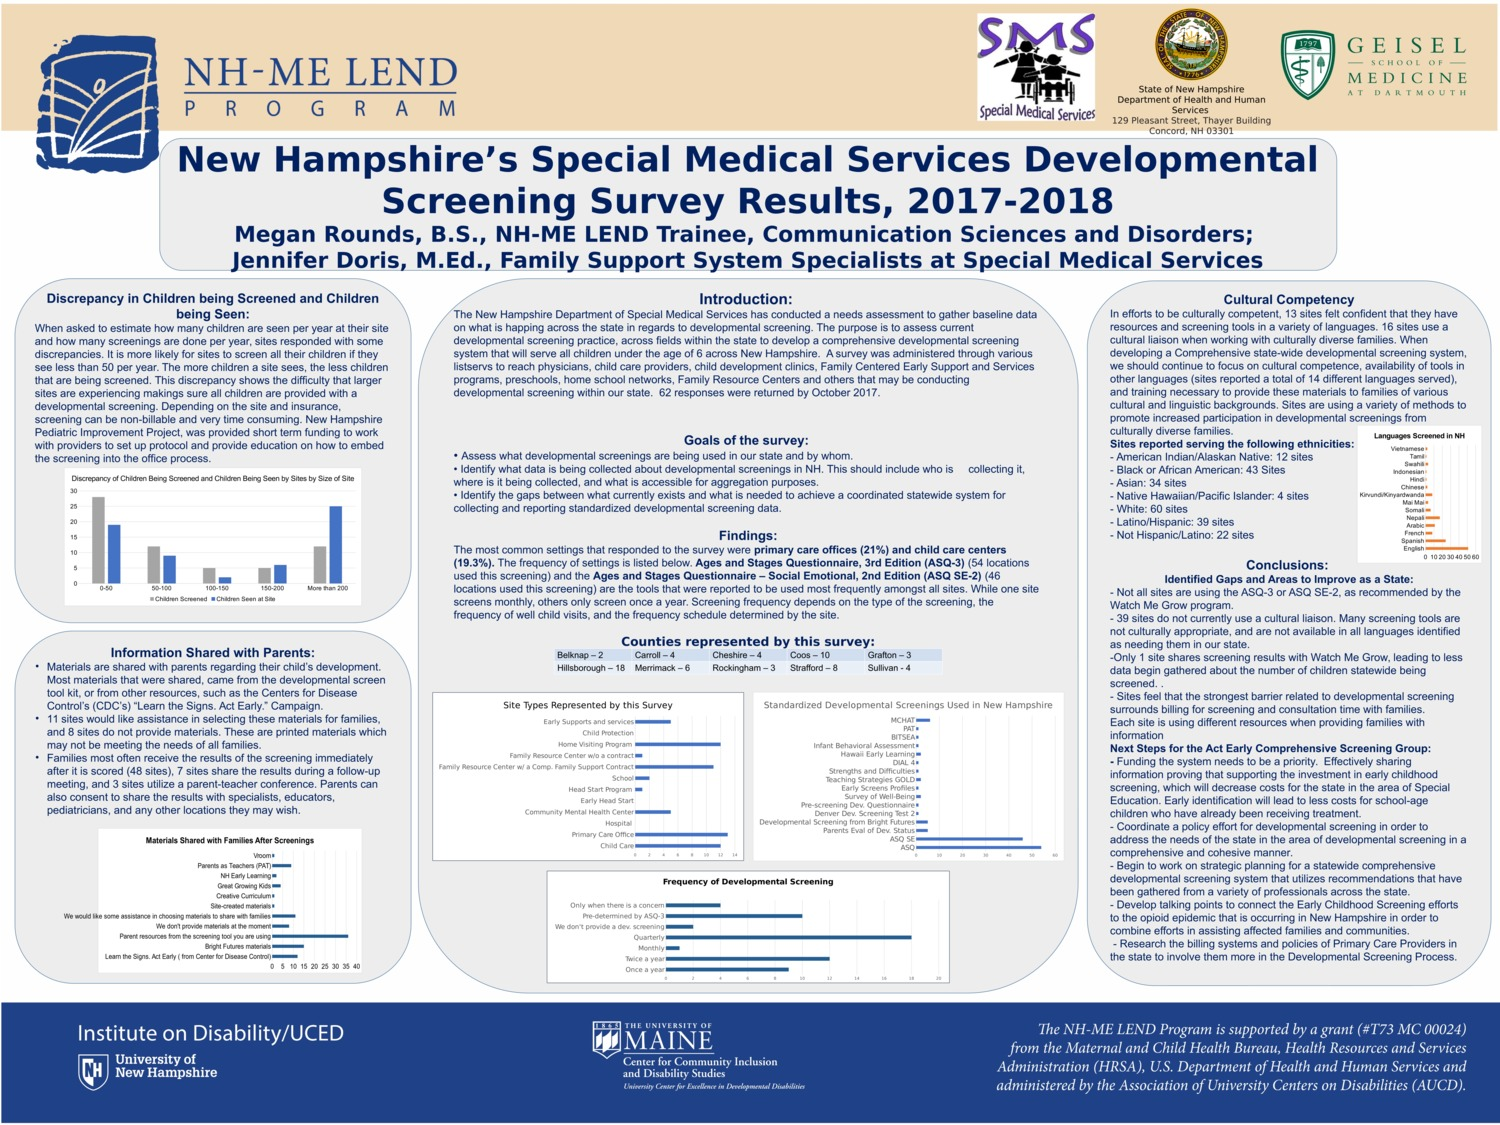 New Hampshire'S Special Medical Services Developmental Screening Survey Results, 2017-2018 by meganrounds